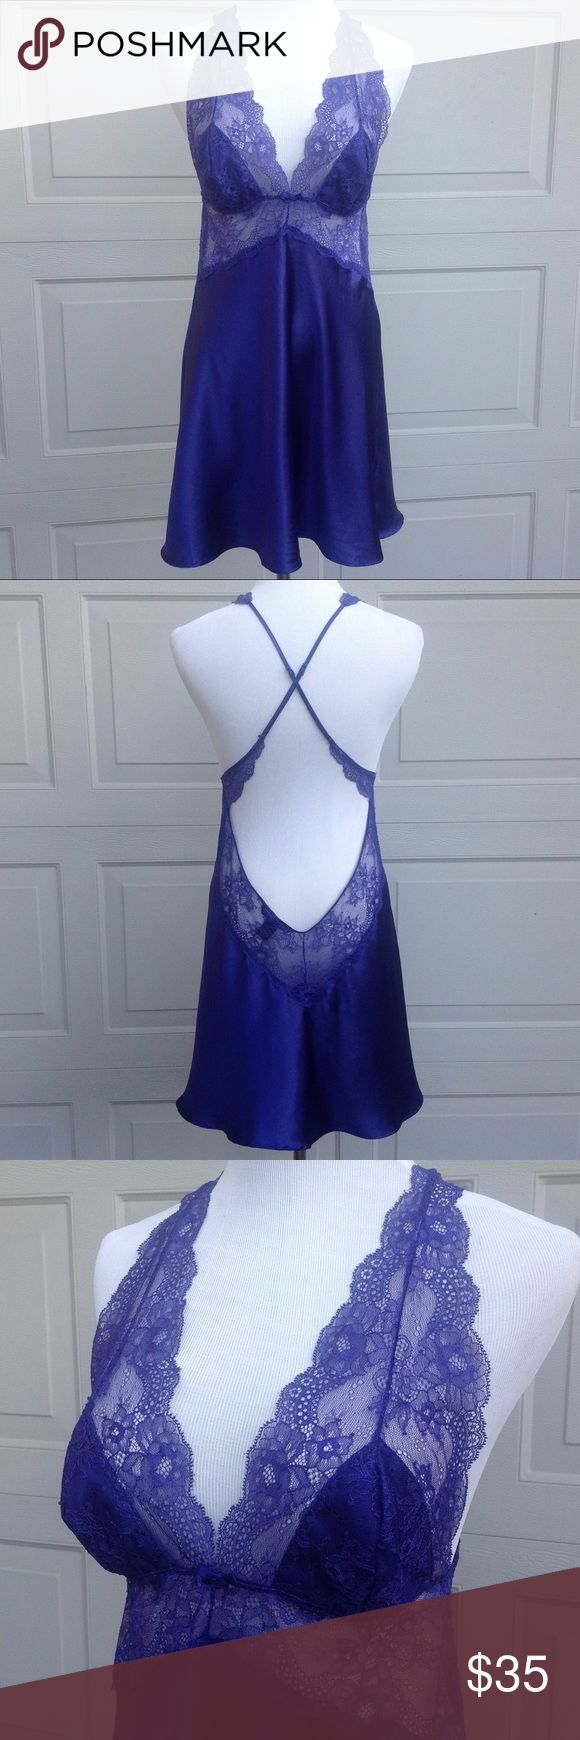 Victoria's Secret Purple Lace and Satin Nightie-L Lace straps, deep V, lace bodice with lined cups, deep dip in back with adjustable cross straps. New condition Victoria's Secret Intimates & Sleepwear Chemises & Slips